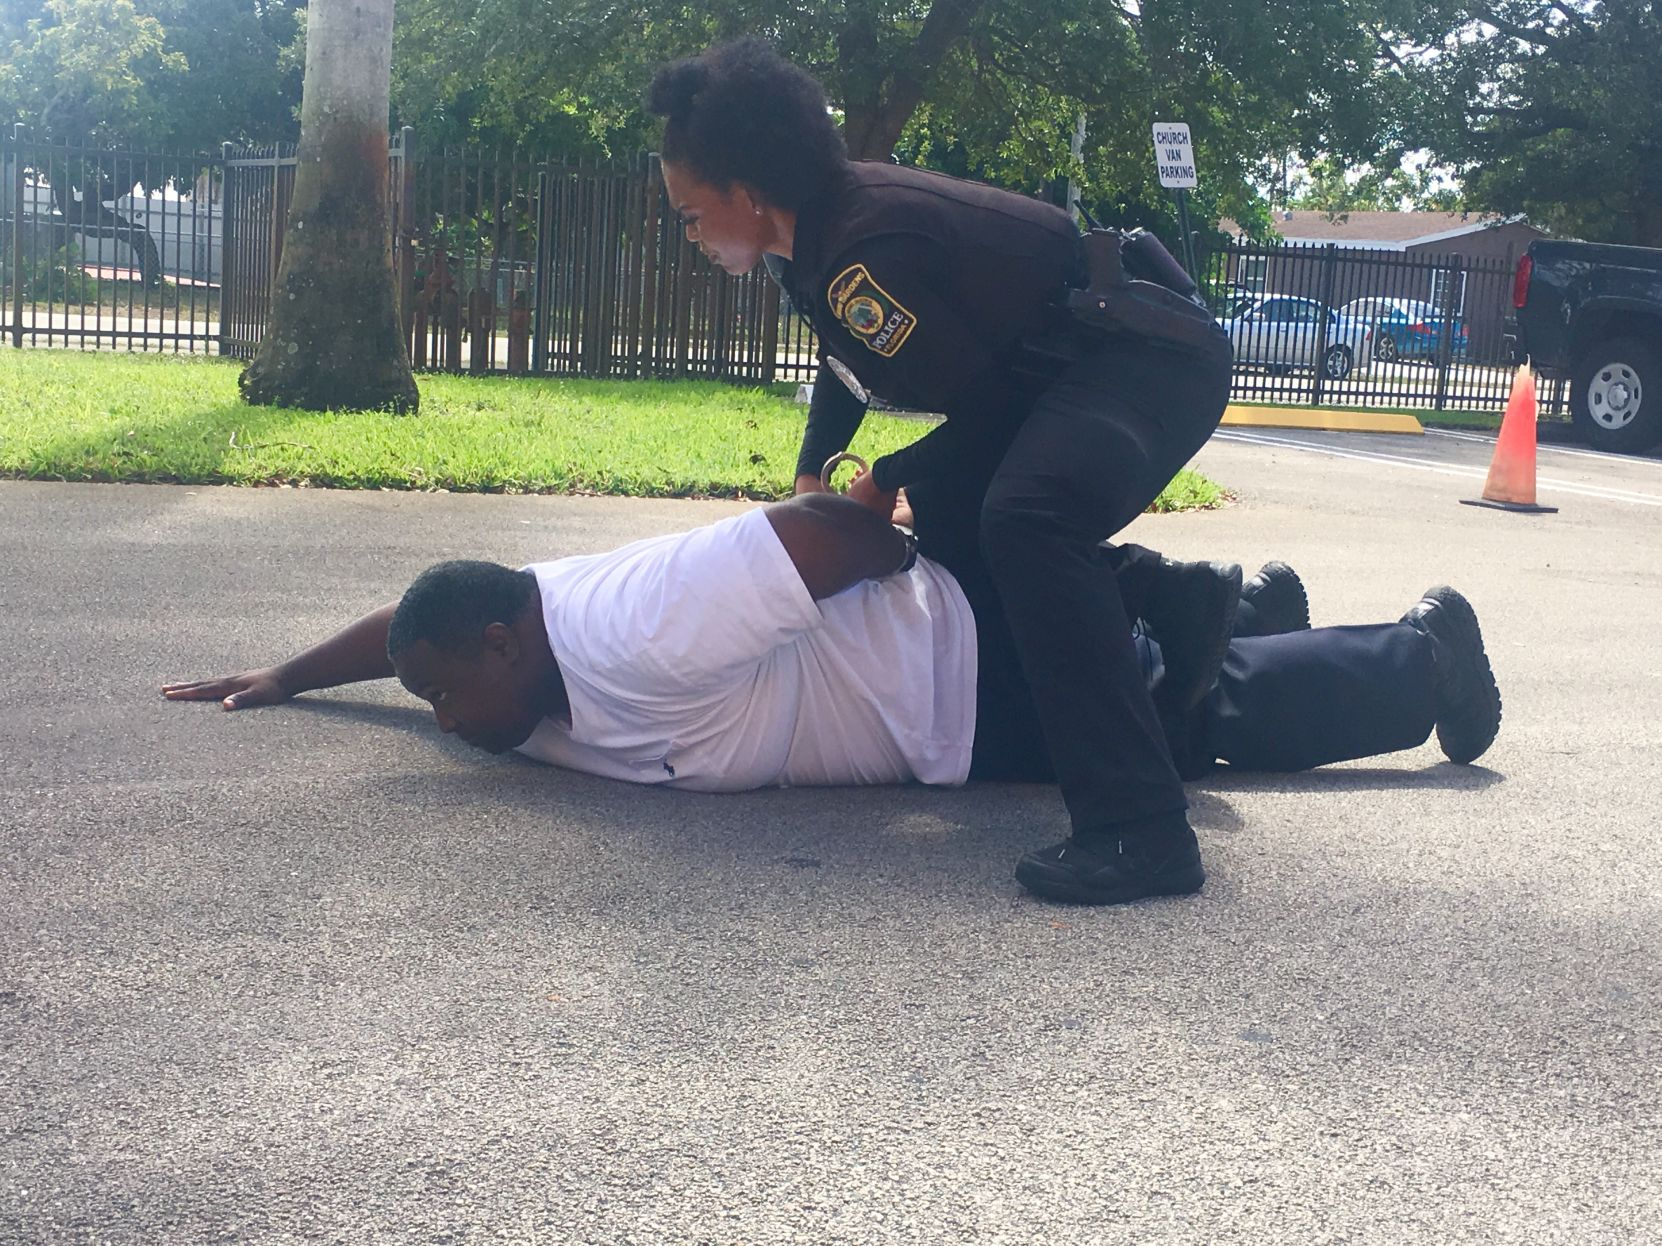 Mock arrest at traffic stop demonstration | Miami Times Online